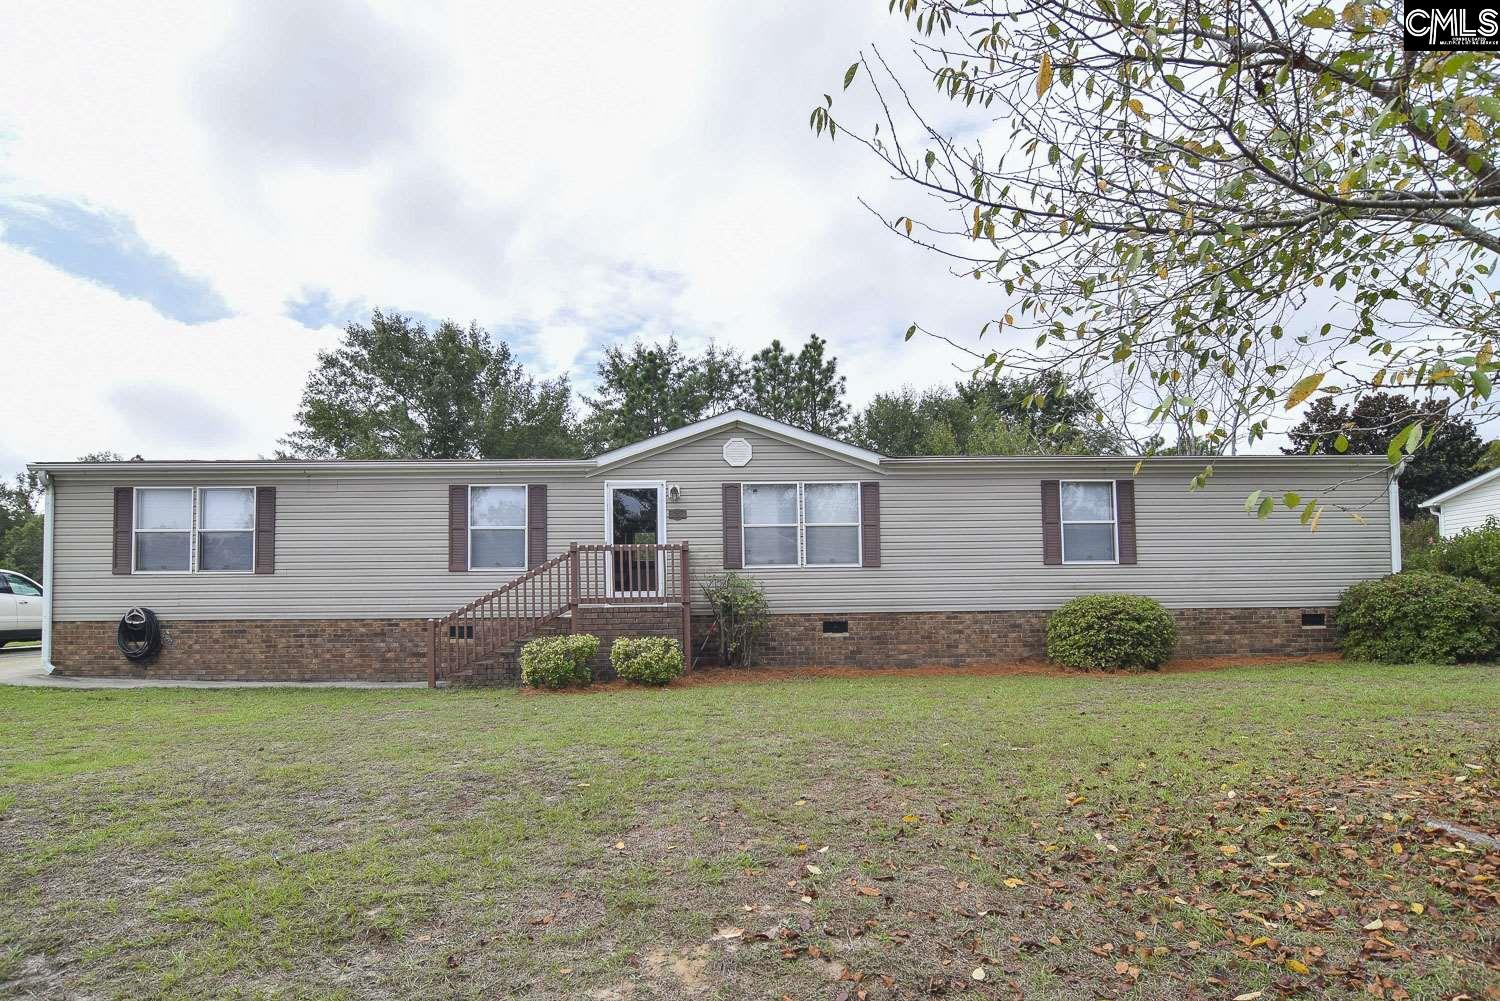 132 Heather Ridge Gaston, SC 29053